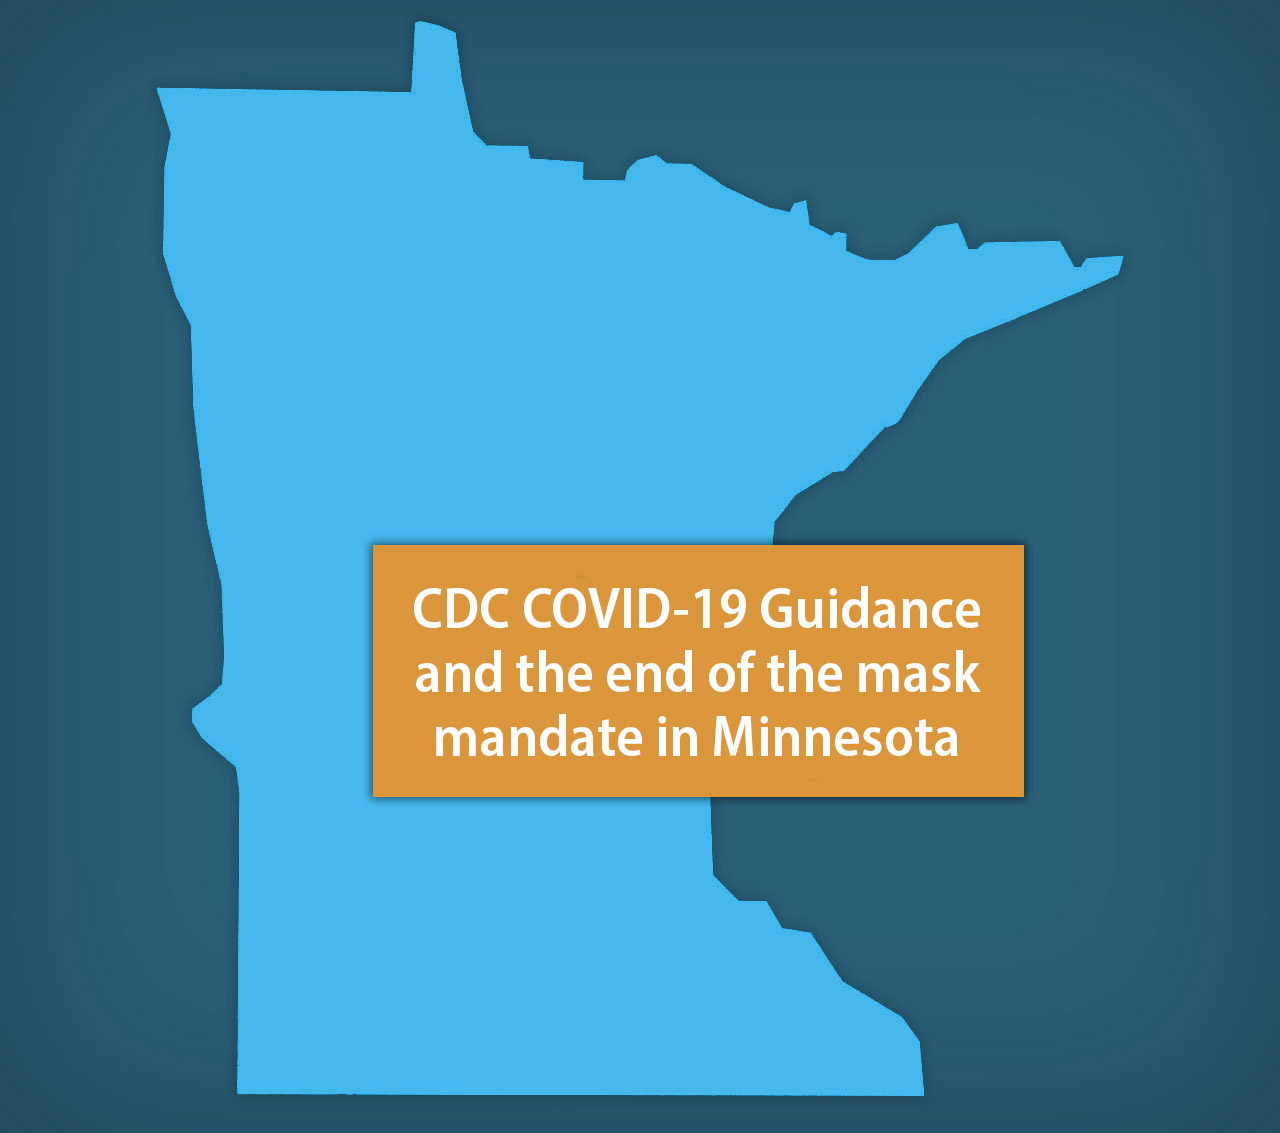 CDC COVID-19 Guidance and the end of the mask mandate in Minnesota